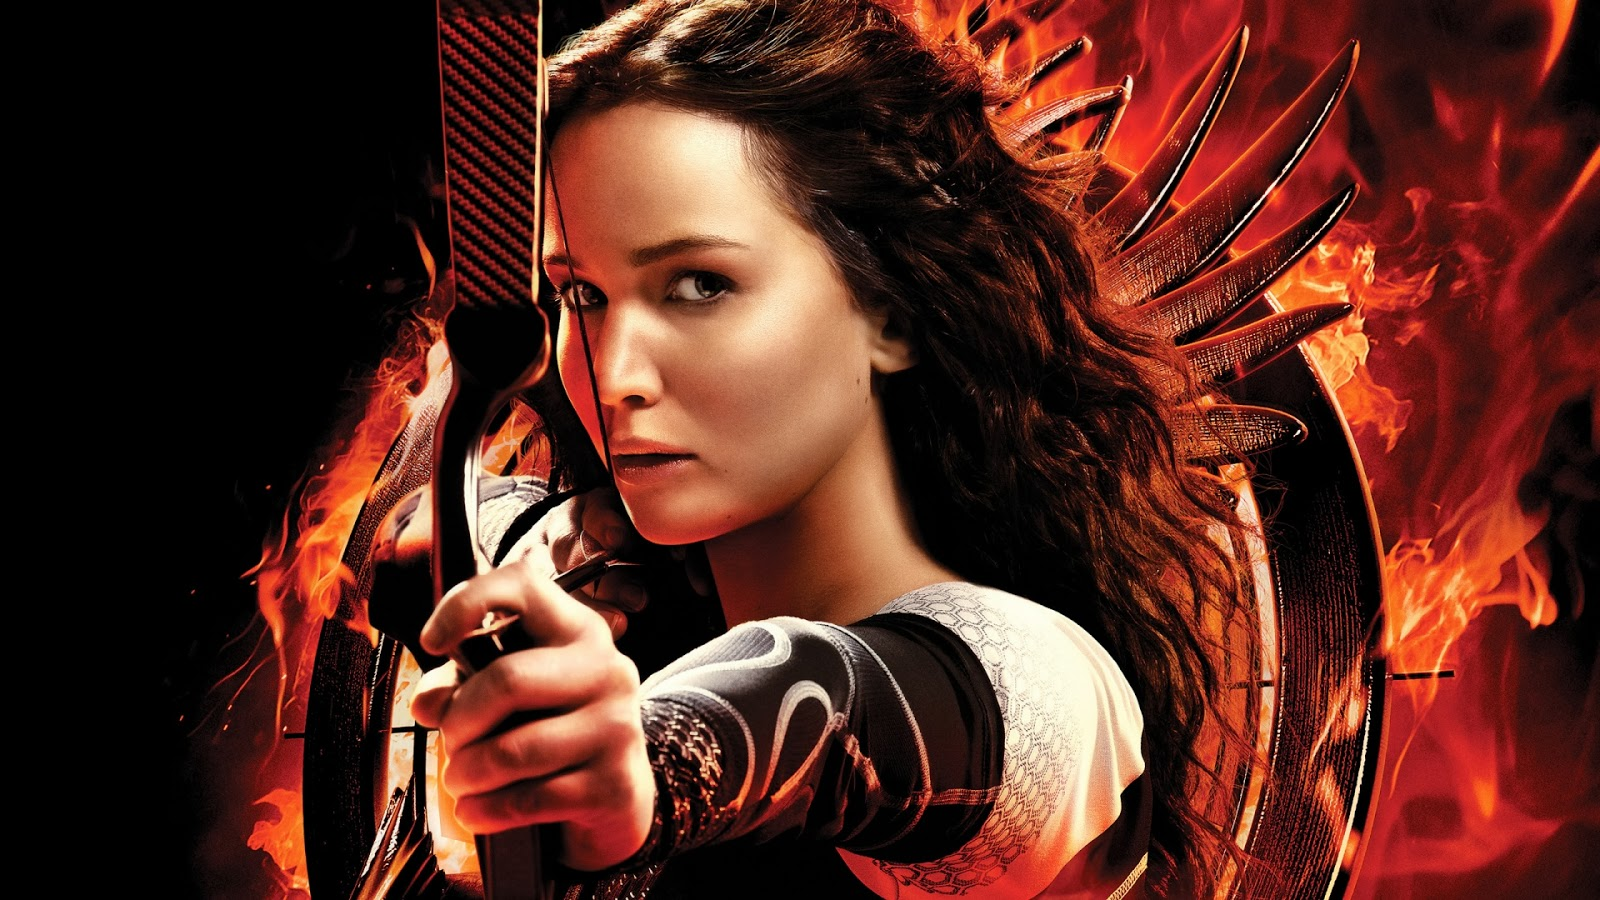 katniss you have been our mission from the beginning